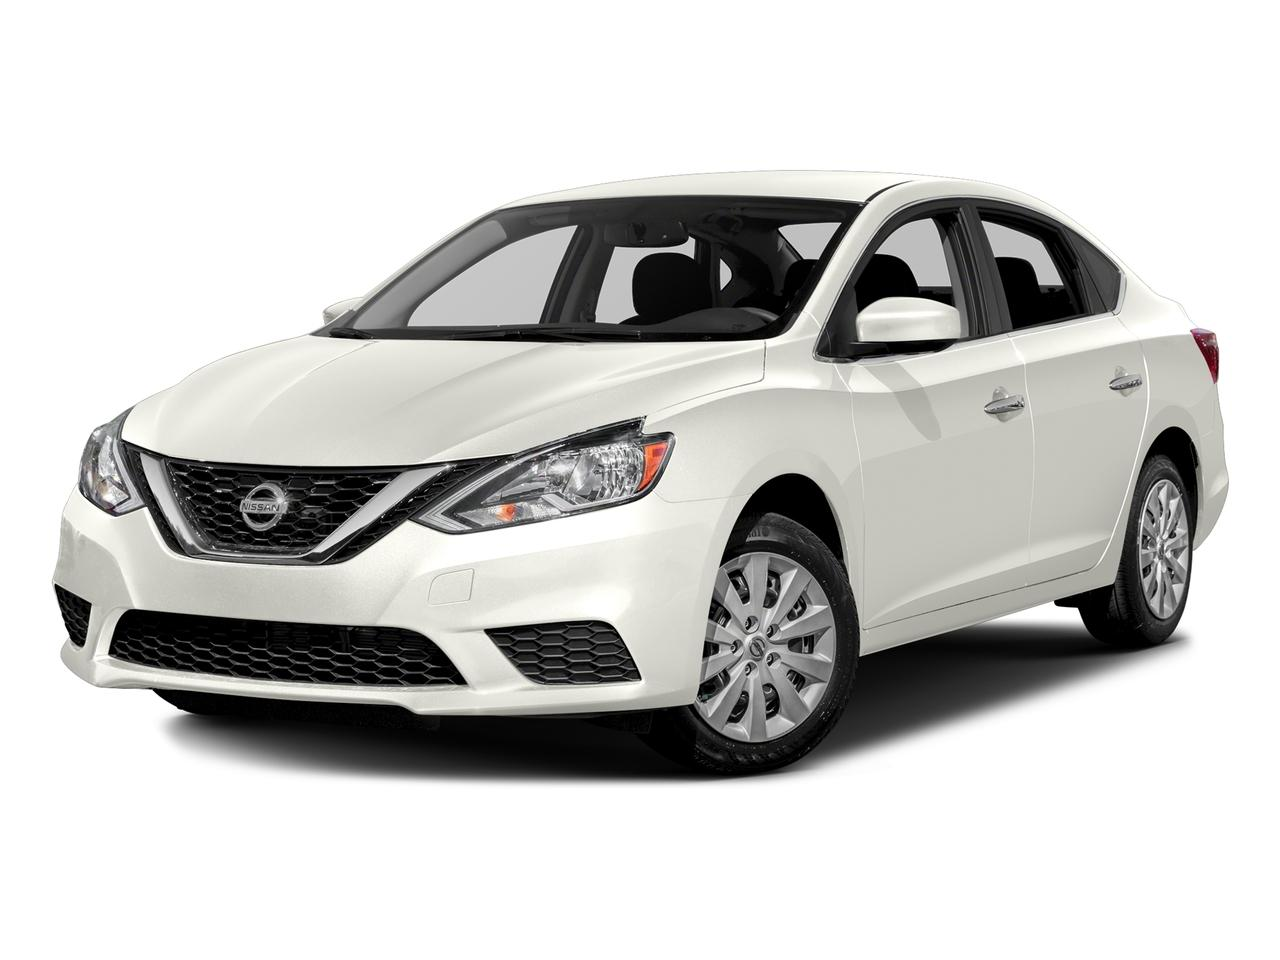 2018 Nissan Sentra Vehicle Photo in Baton Rouge, LA 70806